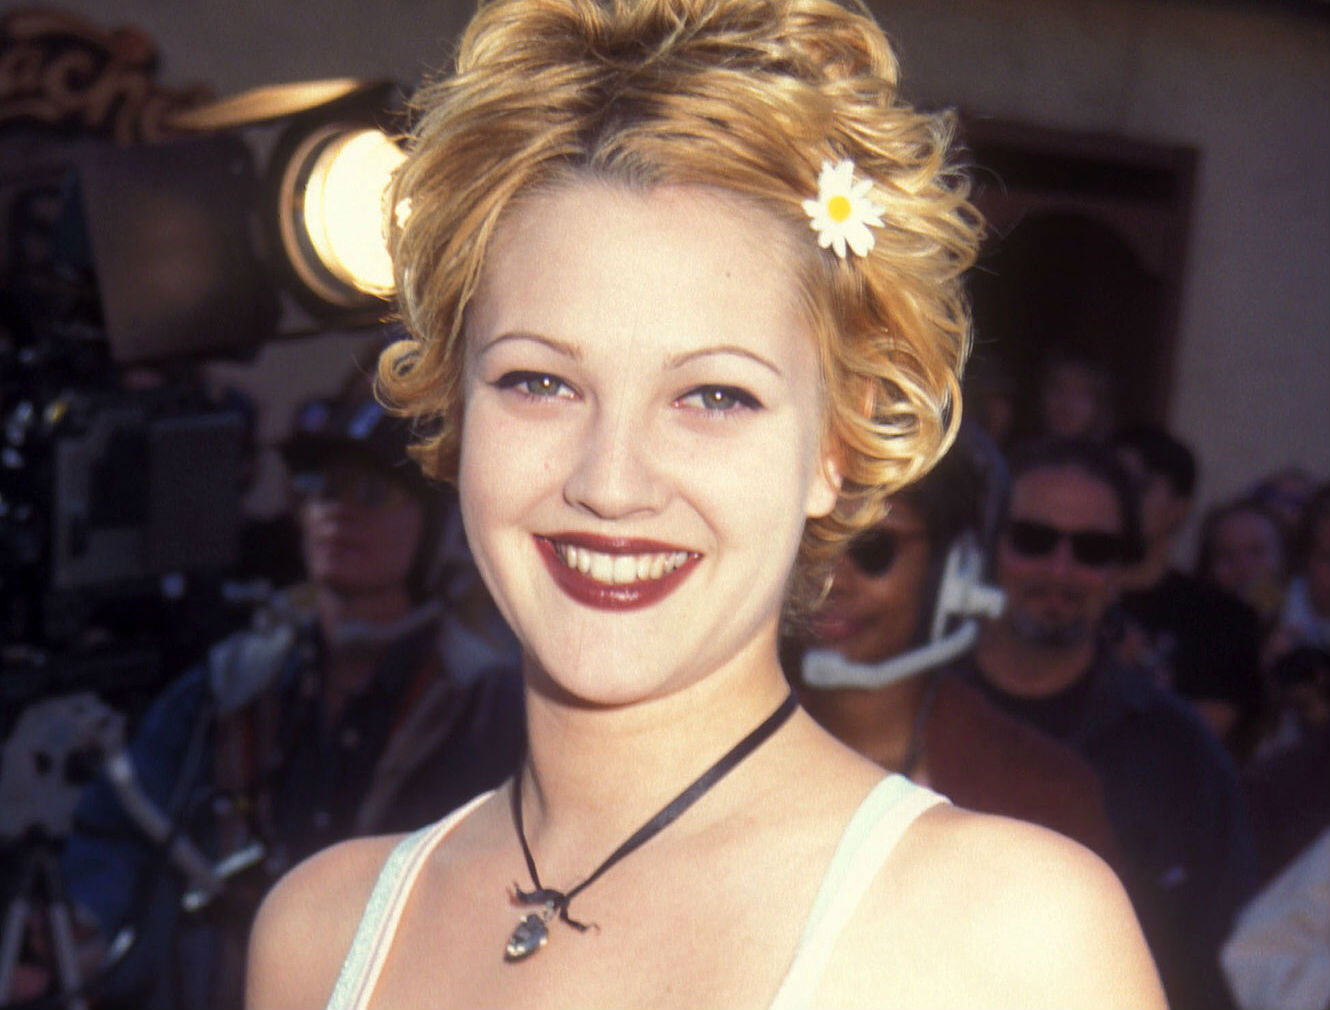 beauty-trends-from-the-90s-we-should-forget-about-03